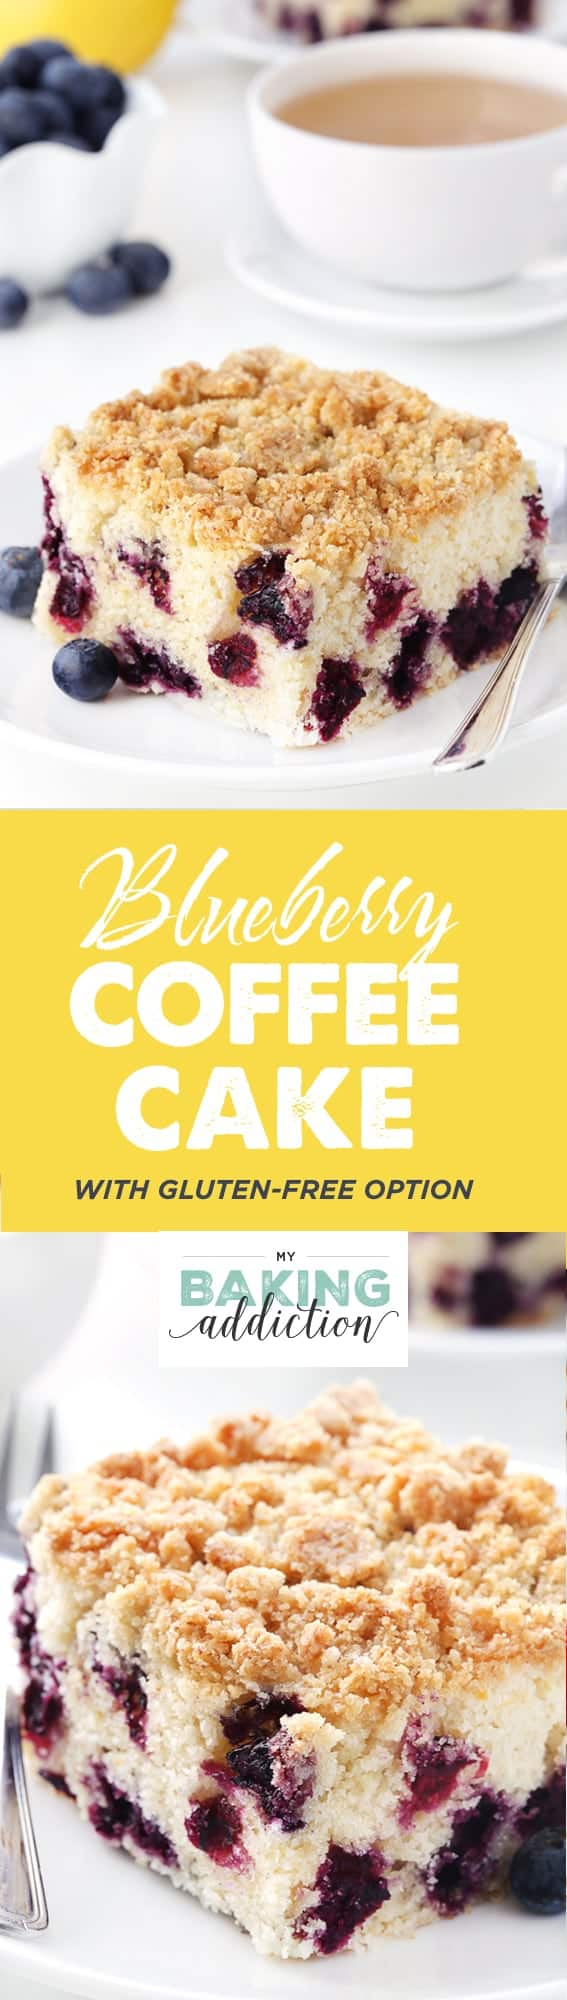 This Blueberry coffee cake with streusel topping tastes just like a delicious blueberry muffin. Recipe contains a gluten-free option.